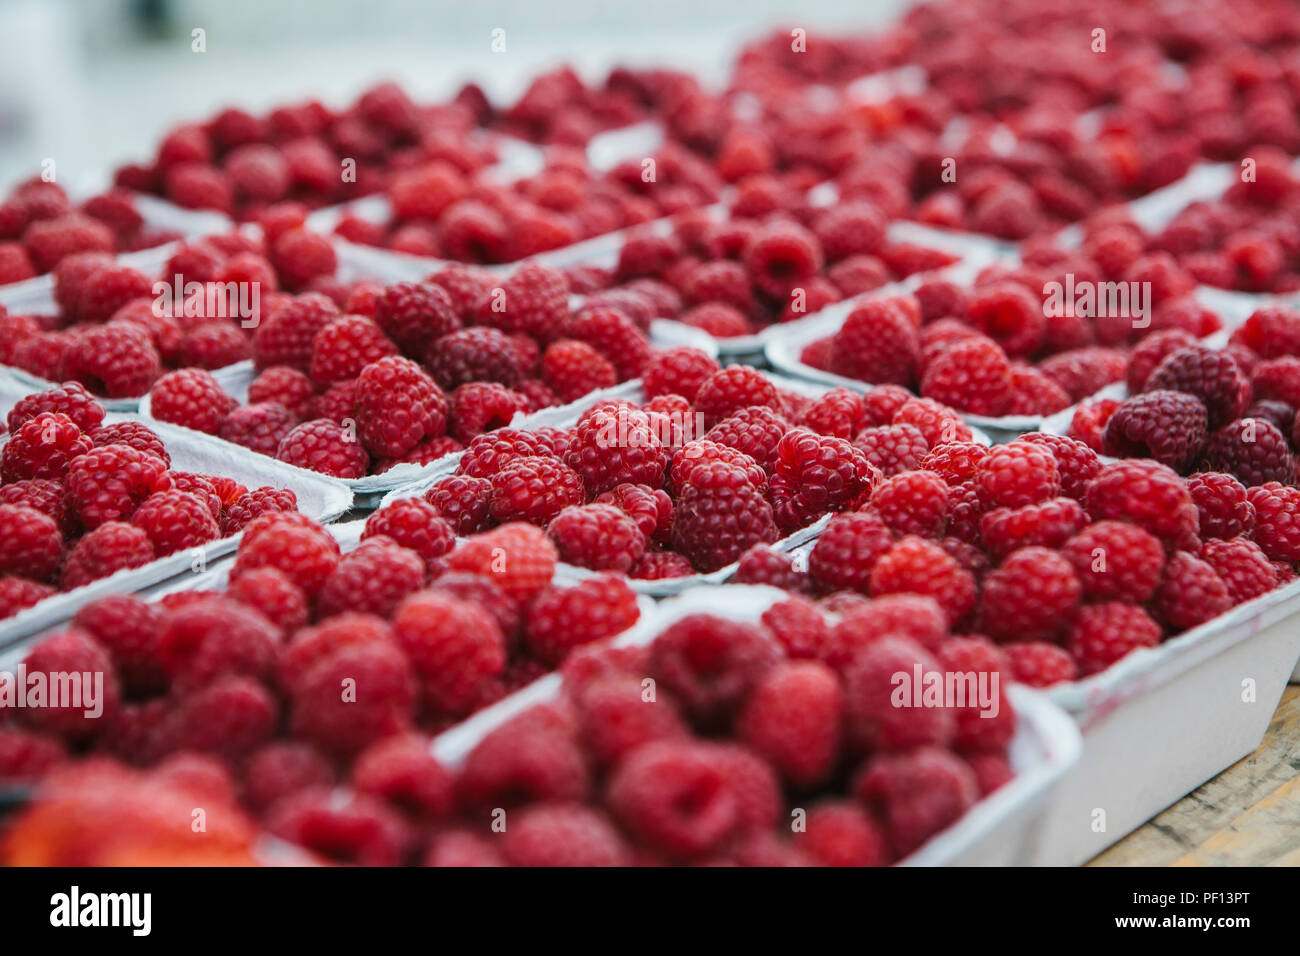 A lot of raspberries in containers on the table in a row. Useful food is rich in vitamins. Harvest. The farm market. - Stock Image